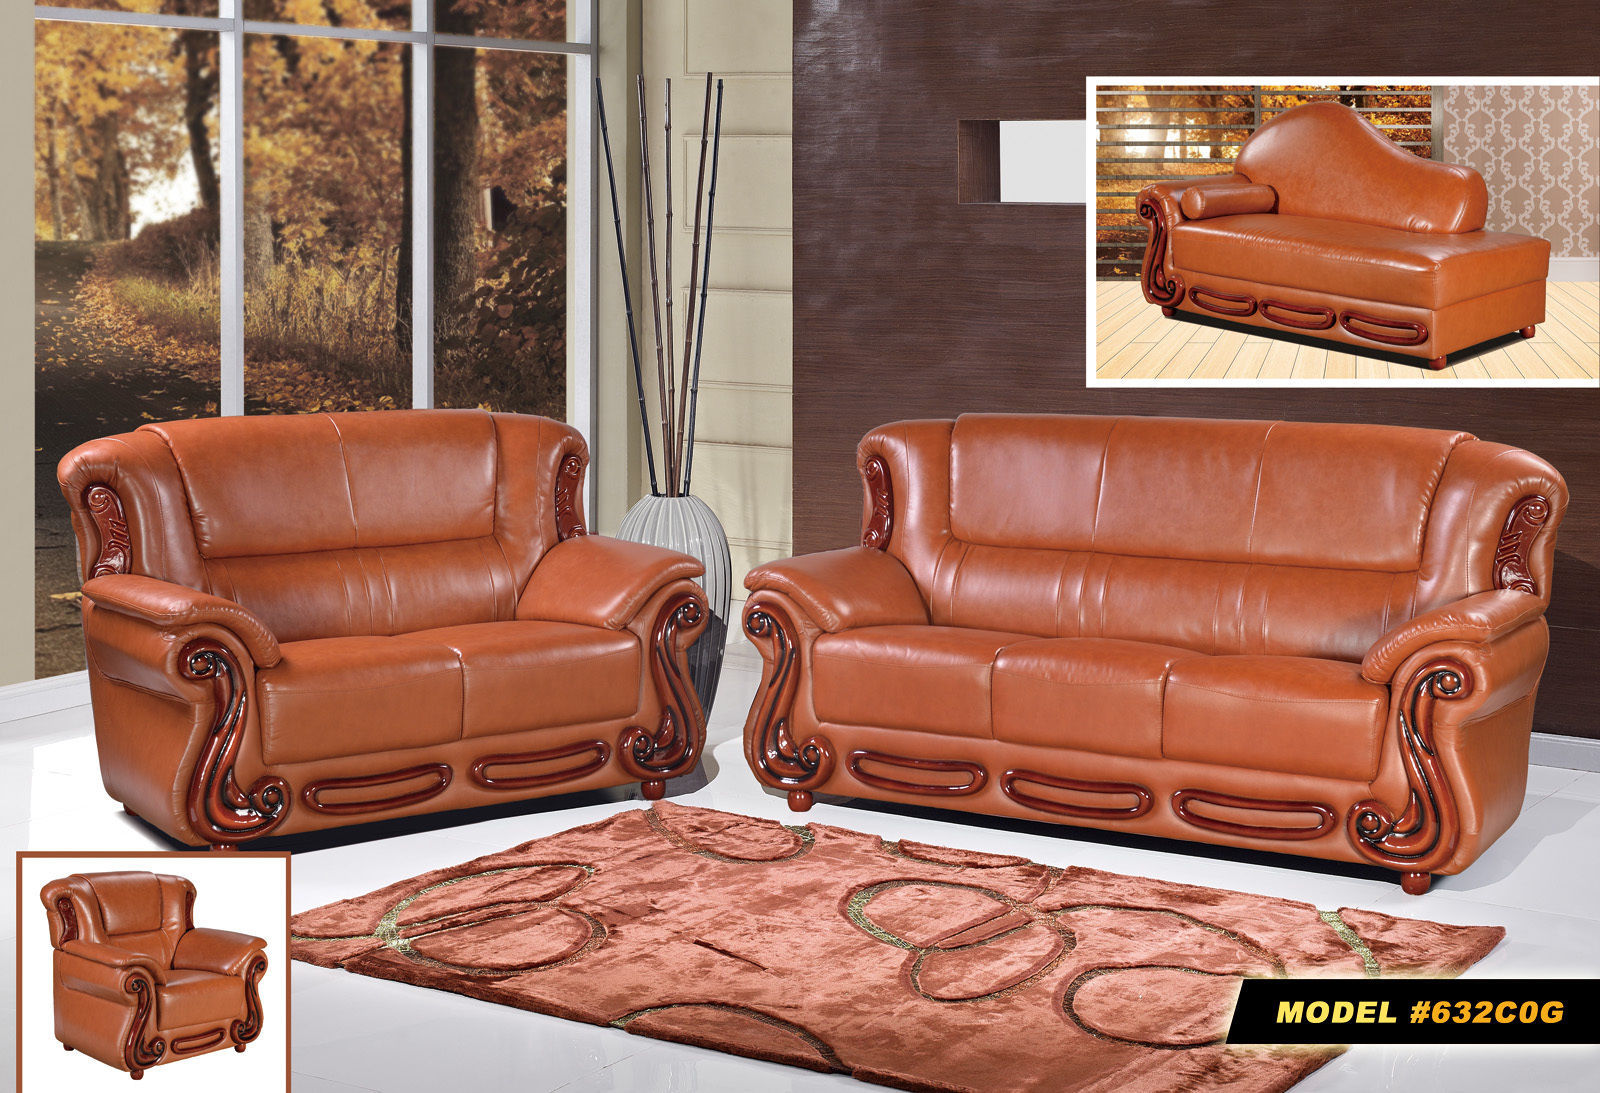 Meridian 632 Bonded Leather Living Room Sofa Set 2pc. Rich Cherry Traditional